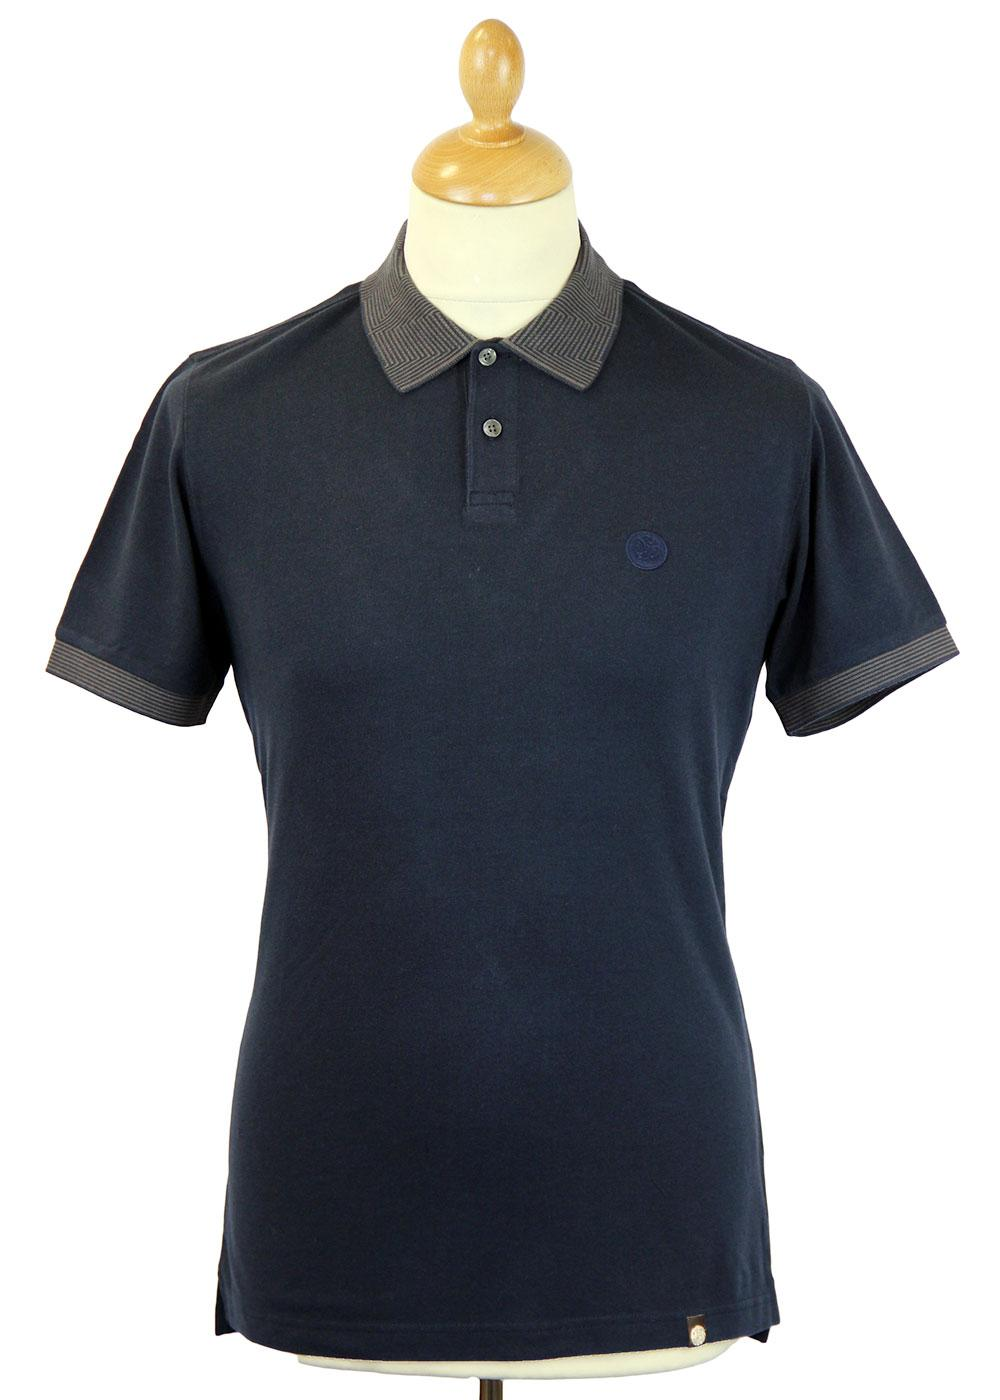 Kenyon PRETTY GREEN Retro Mod Optical Polo Shirt